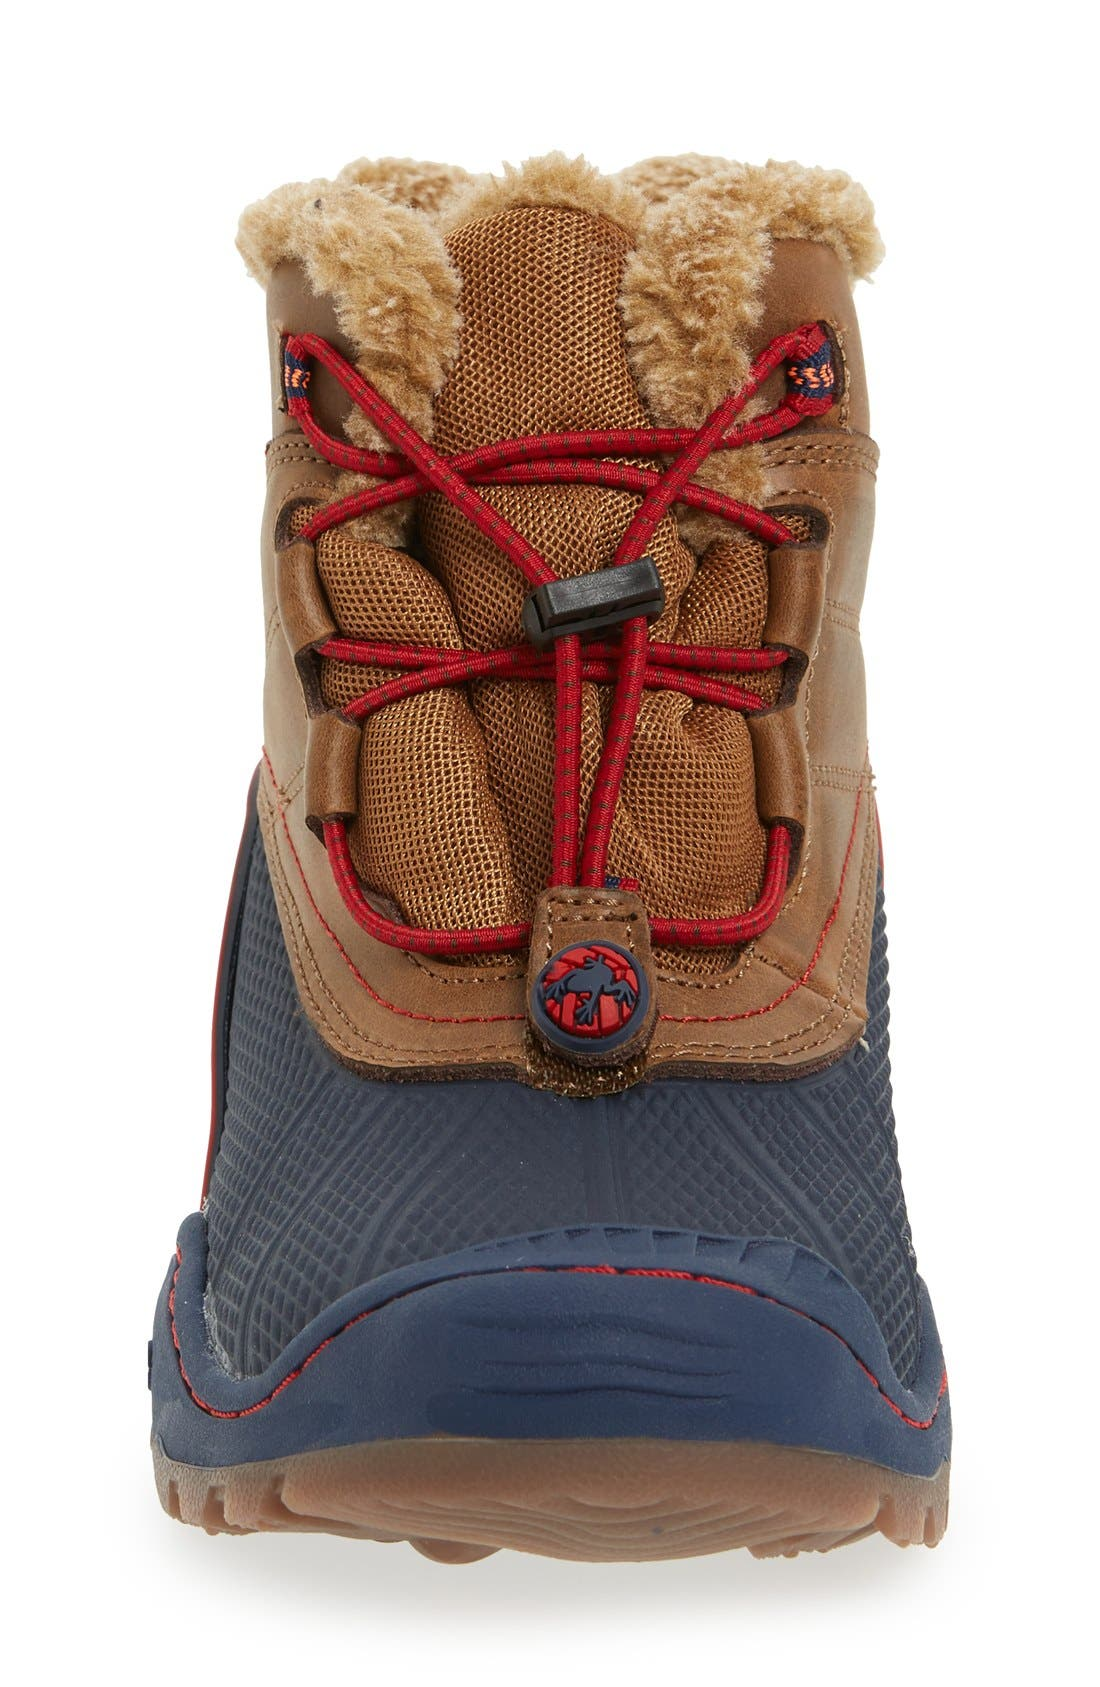 'Baltoro 3' Waterproof Insulated Snow Boot,                             Alternate thumbnail 3, color,                             Brown/ Navy